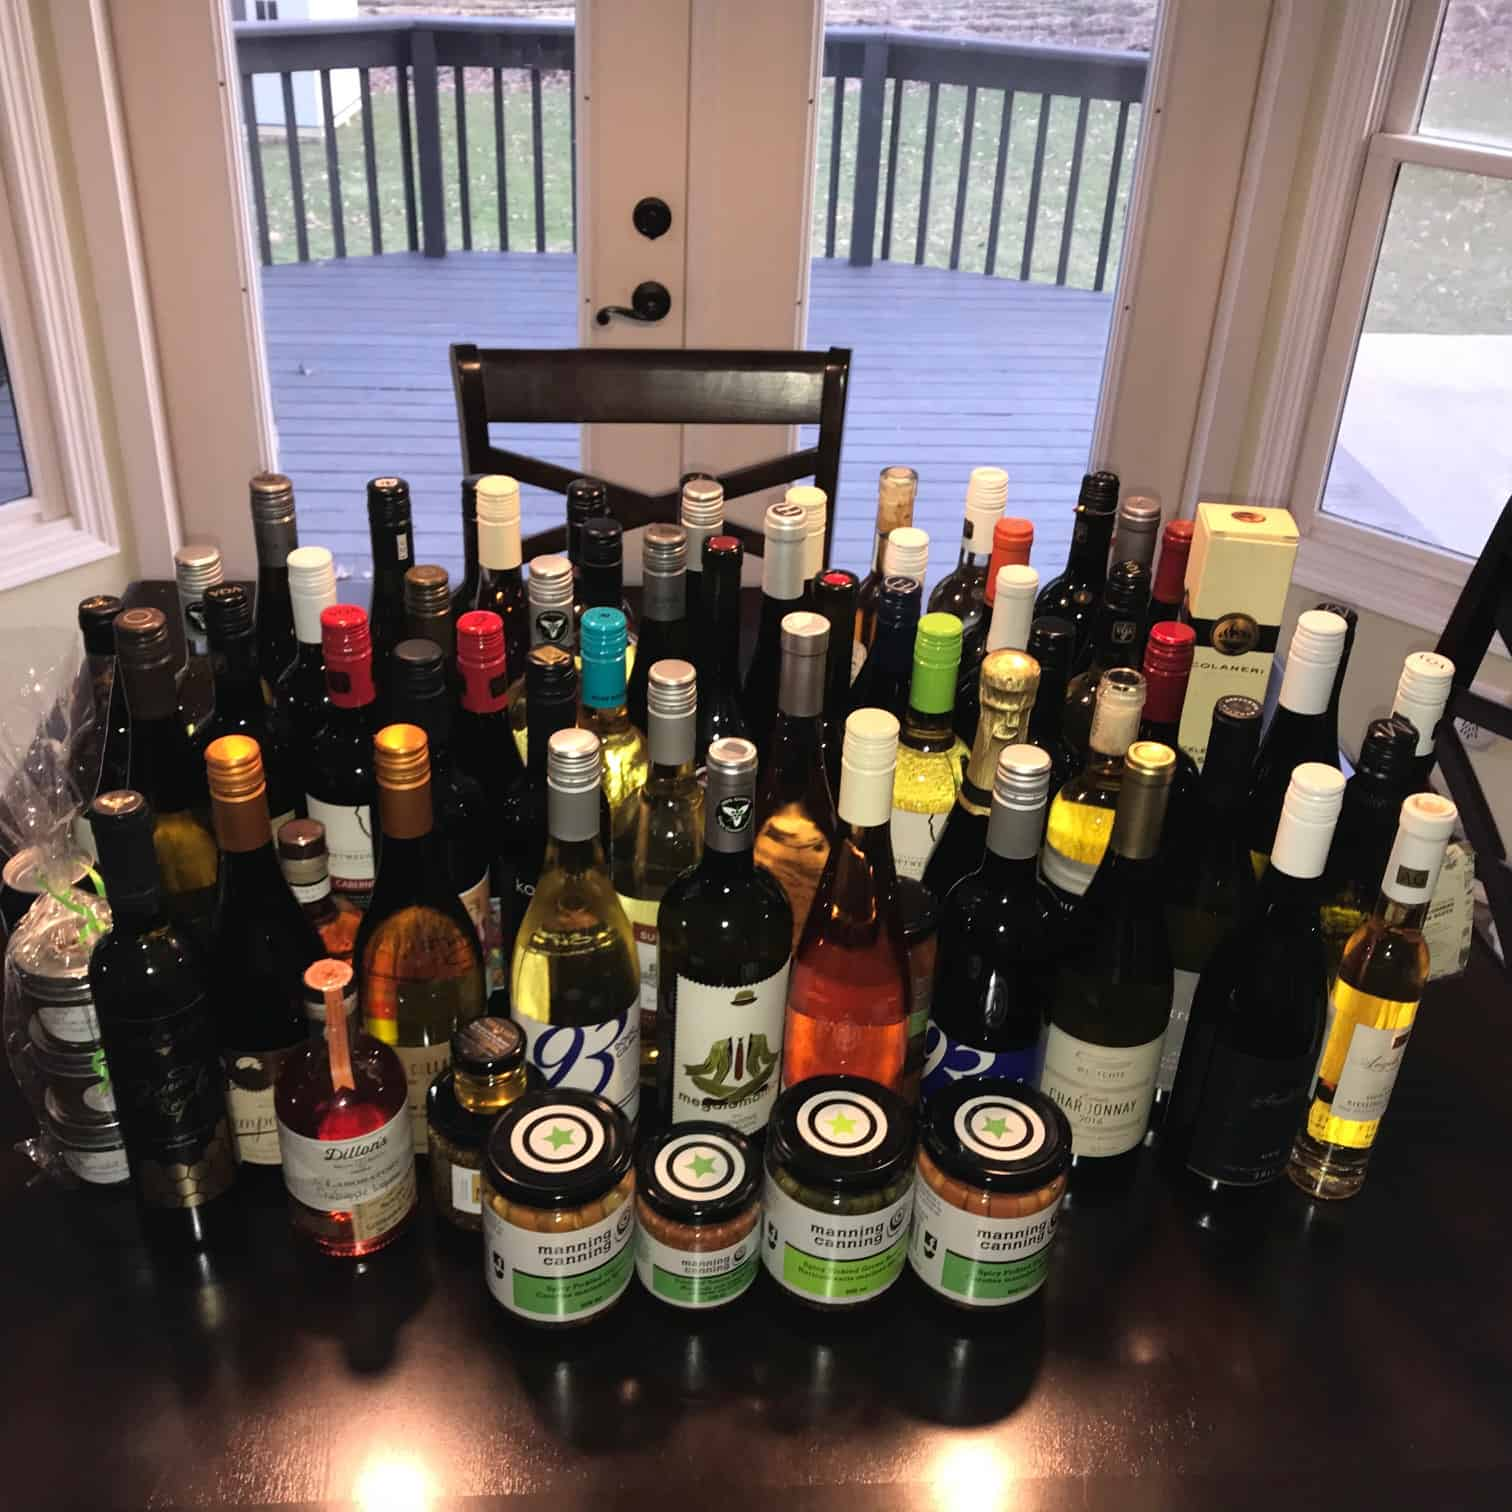 Giant collection of wine bottles lined up on kitchen table